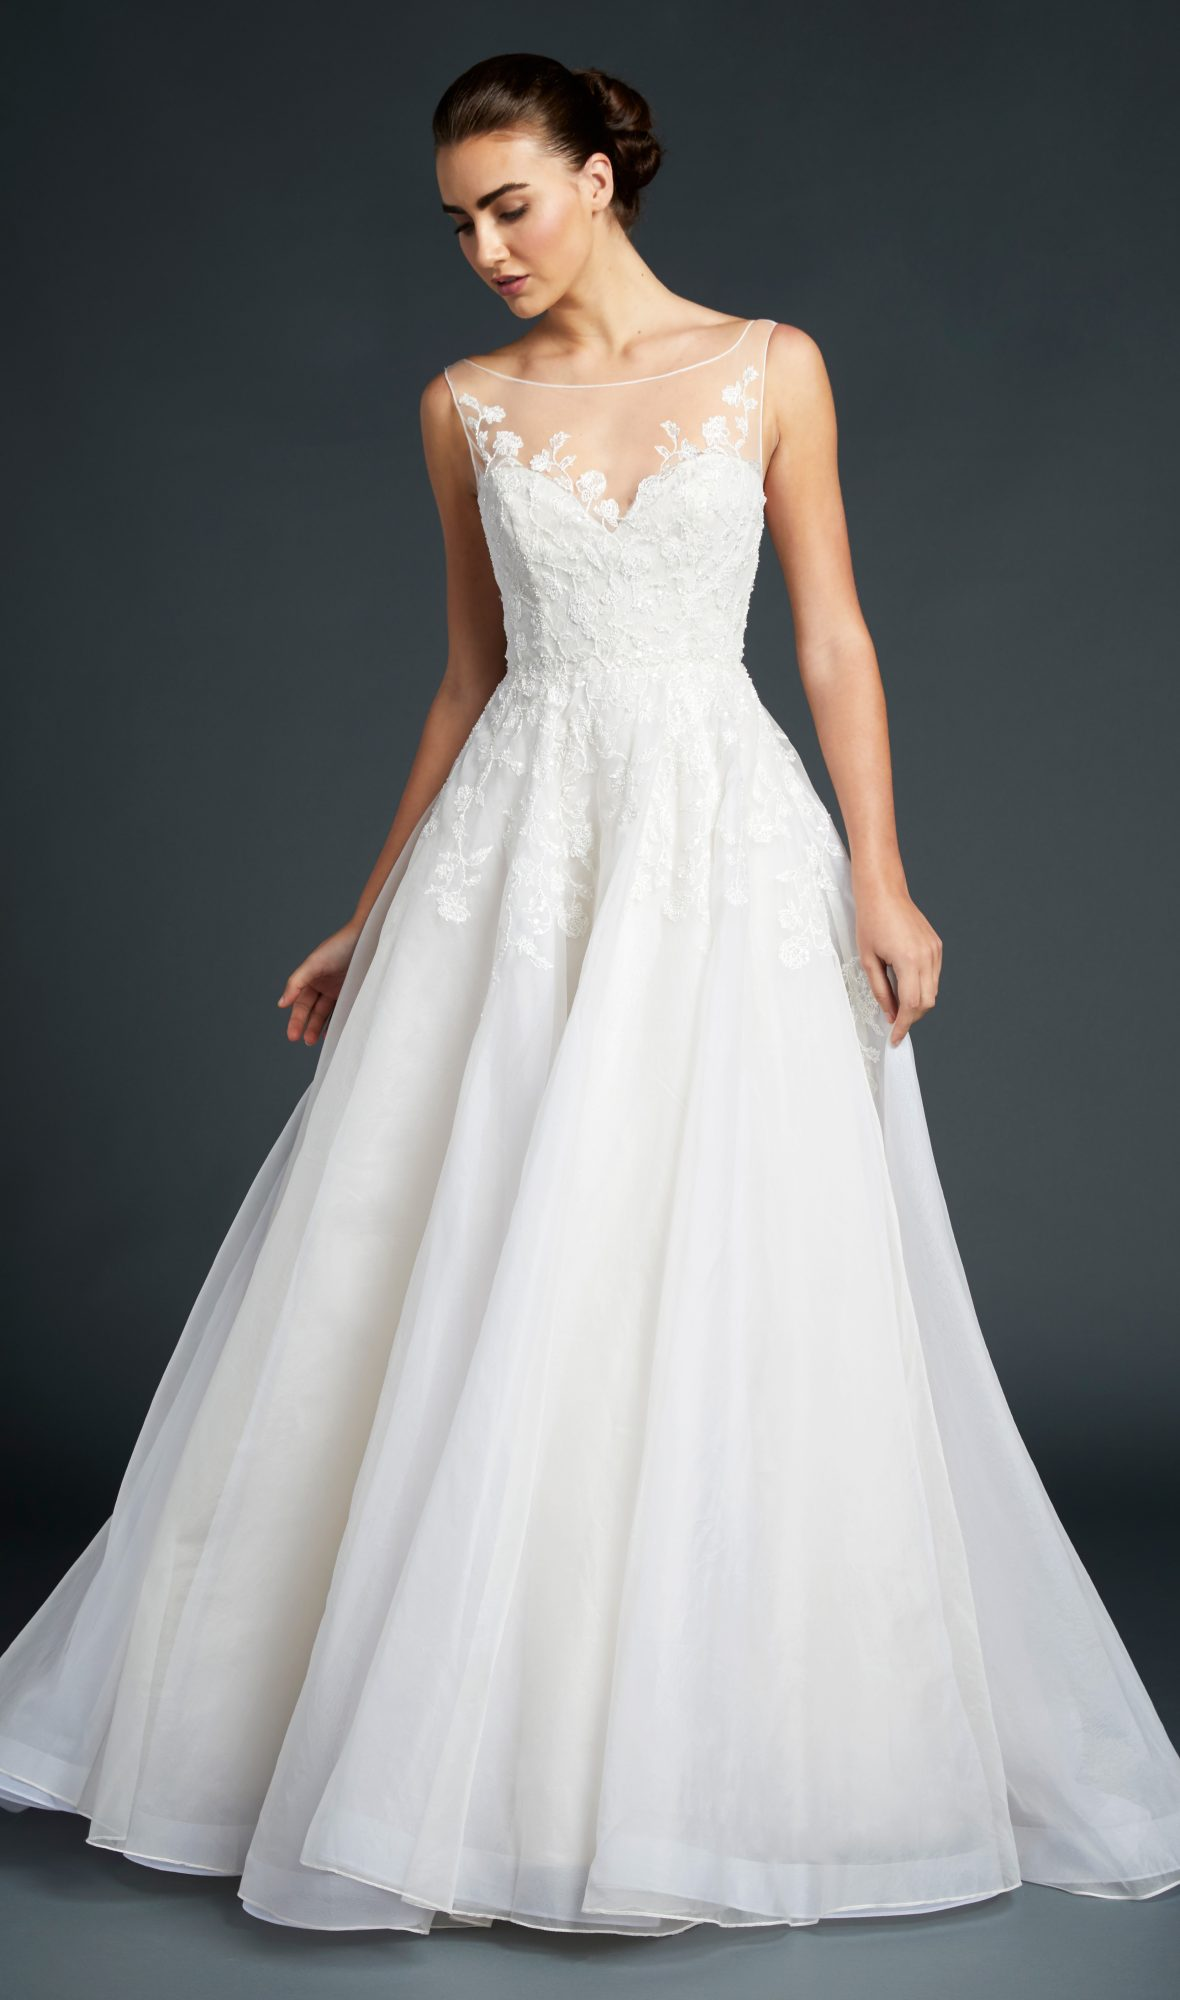 blue willow wedding dress illusion foral applique a-line